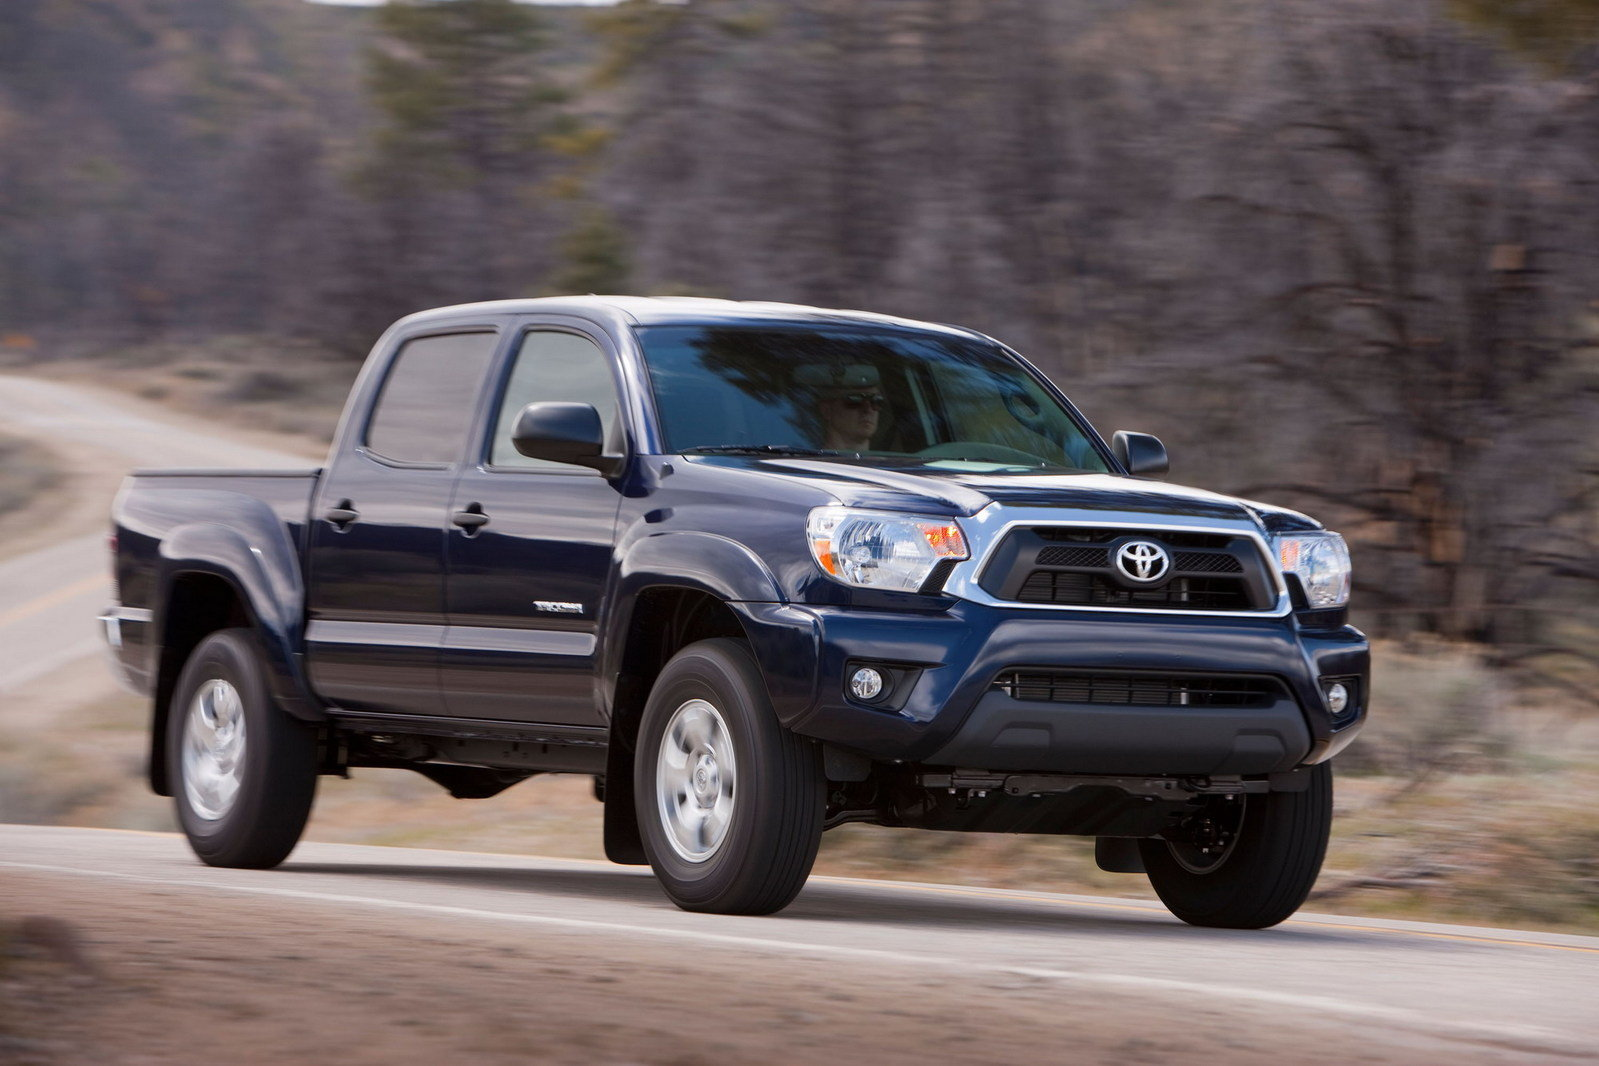 2012 toyota tacoma review top speed. Black Bedroom Furniture Sets. Home Design Ideas